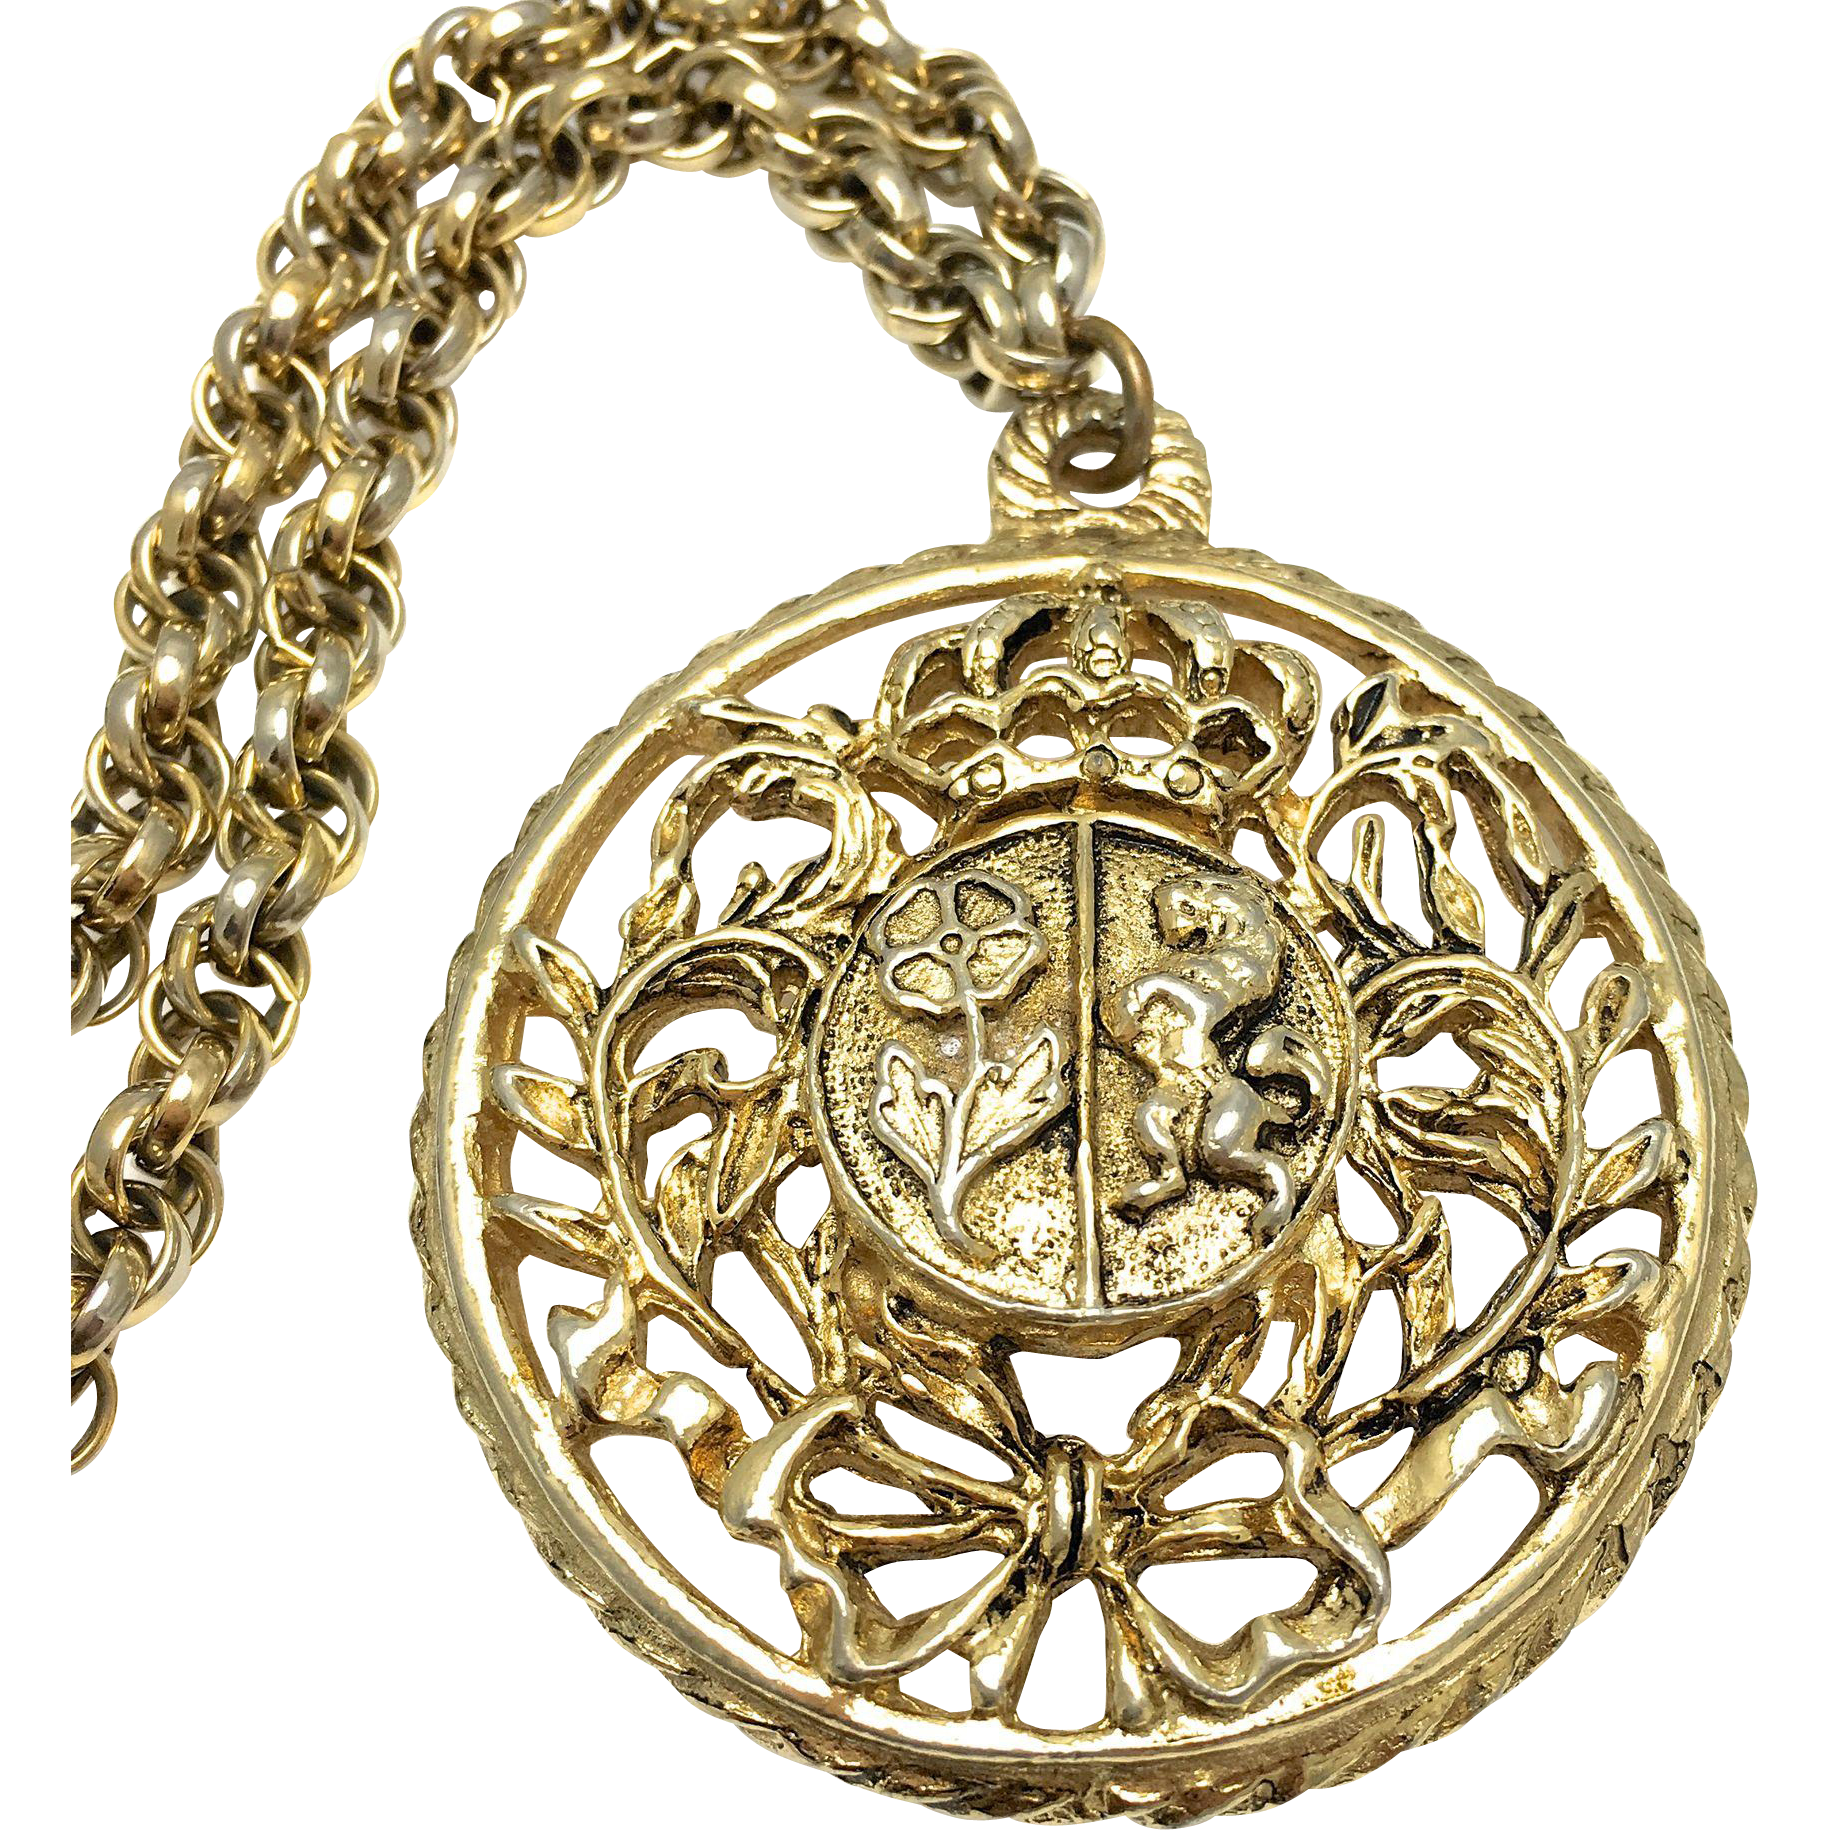 Coro Round Crest Pendant Necklace - Gold Tone - Flower and Lion Shield with Vines Crown and Bow - Costume Jewelry